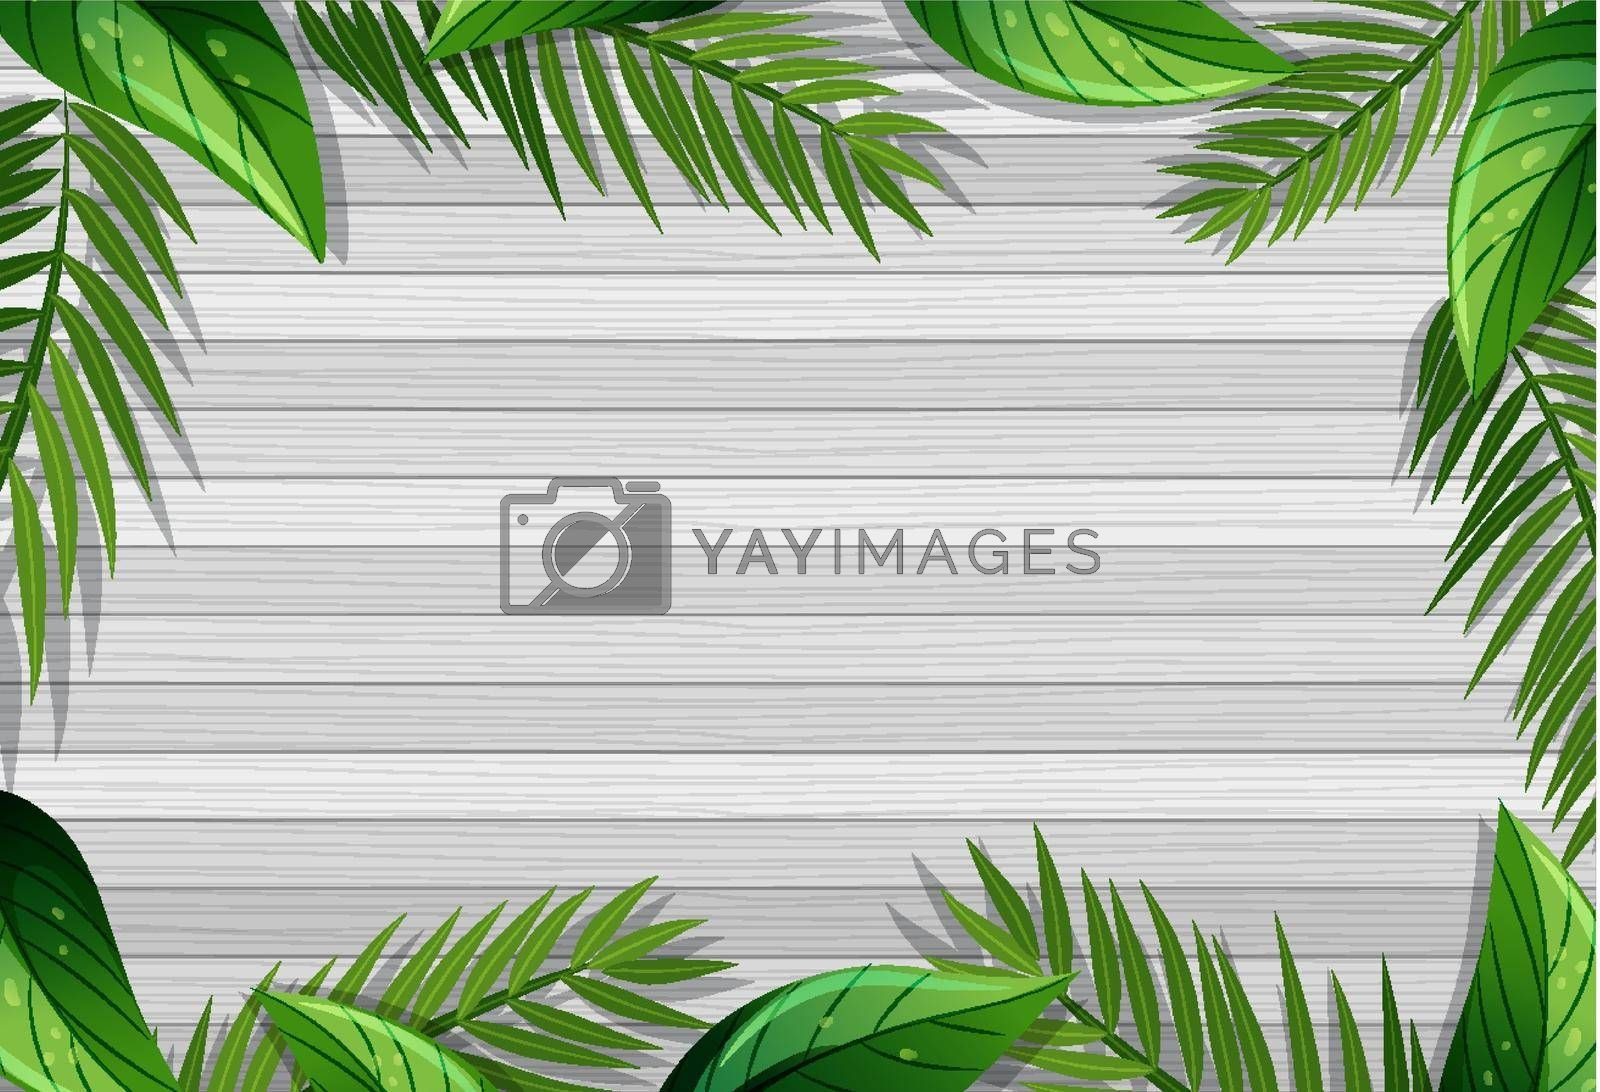 Top view of blank wooden table with leaves elements illustration